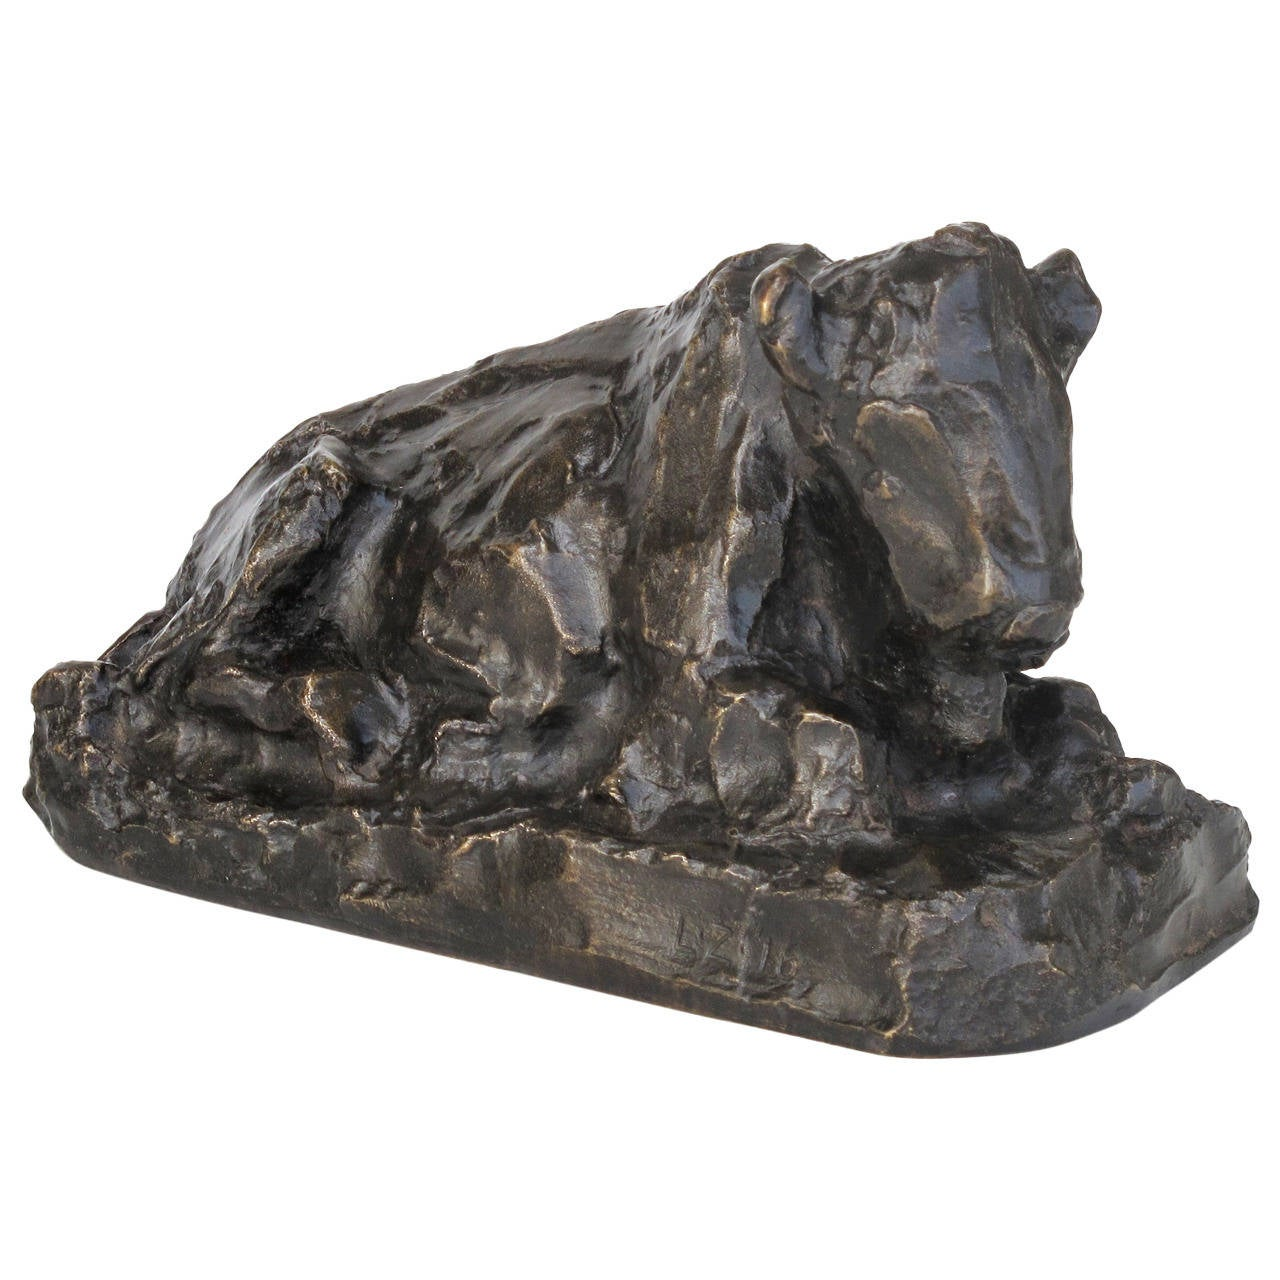 Placid Bronze Sculpture of a Sitting Ox by Lambertus Zijl, 1916 For Sale